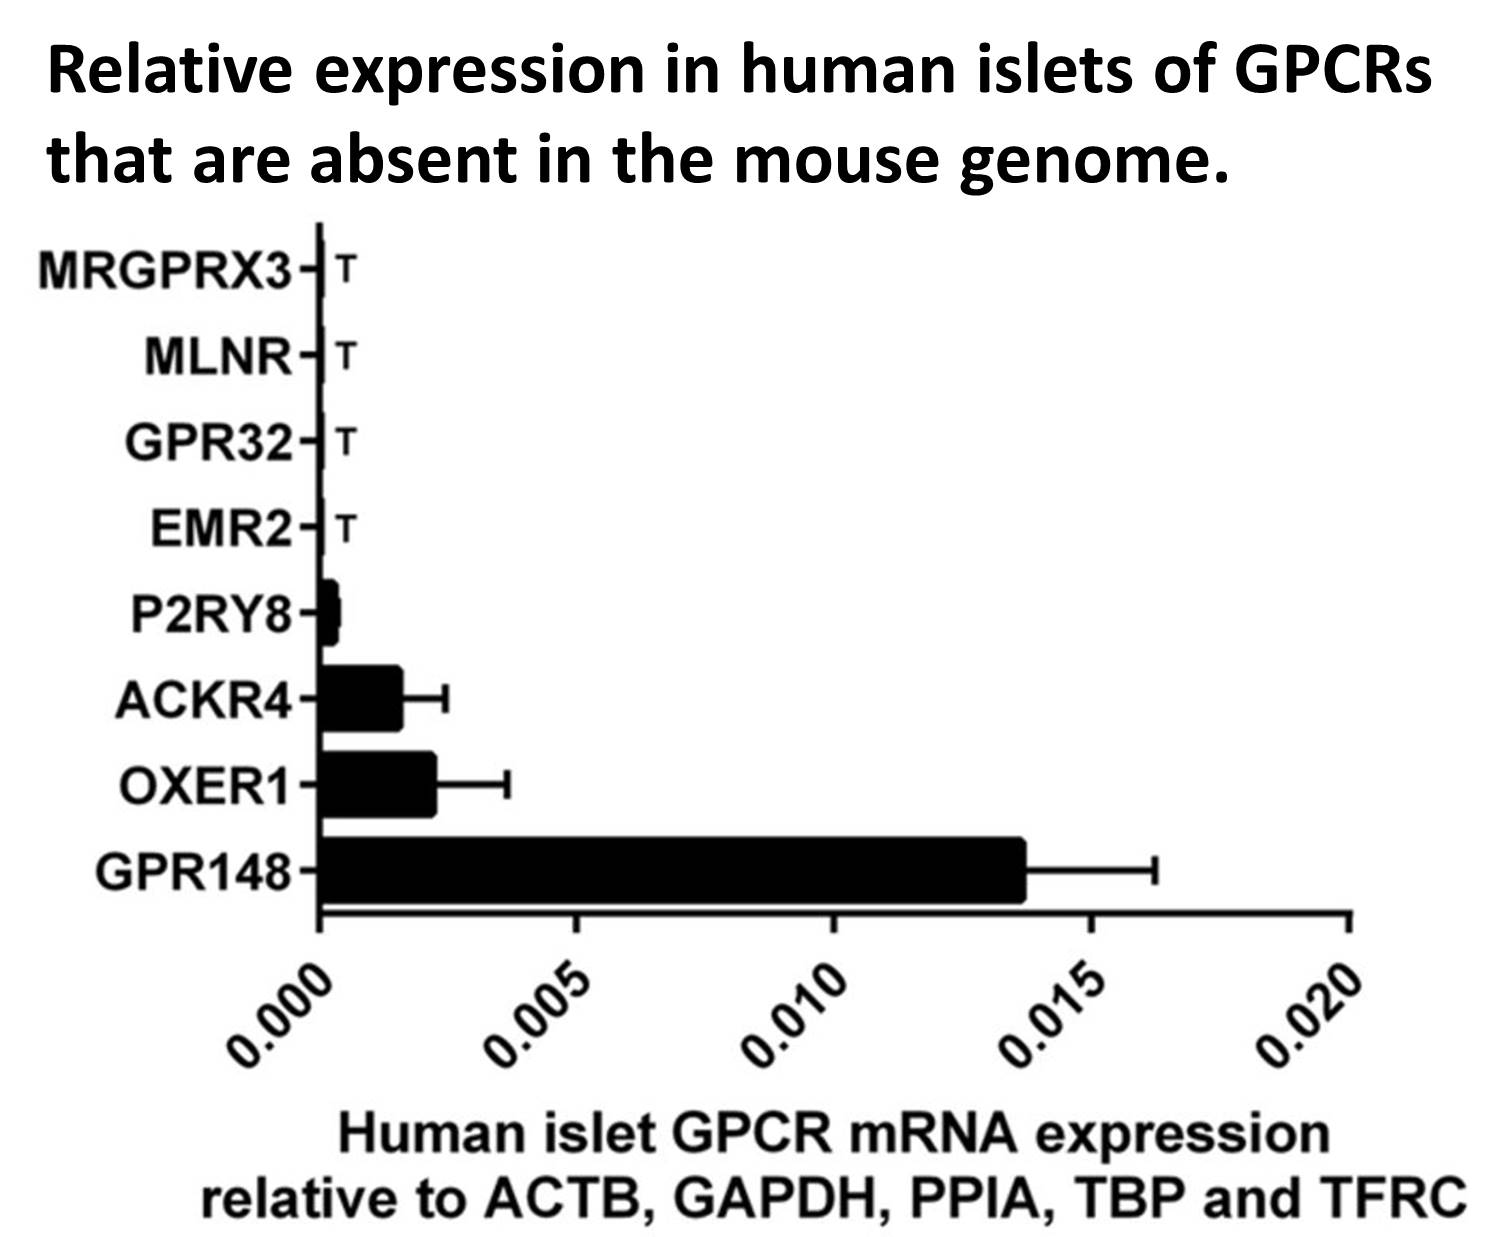 The differences between mice and human protein expression in islets